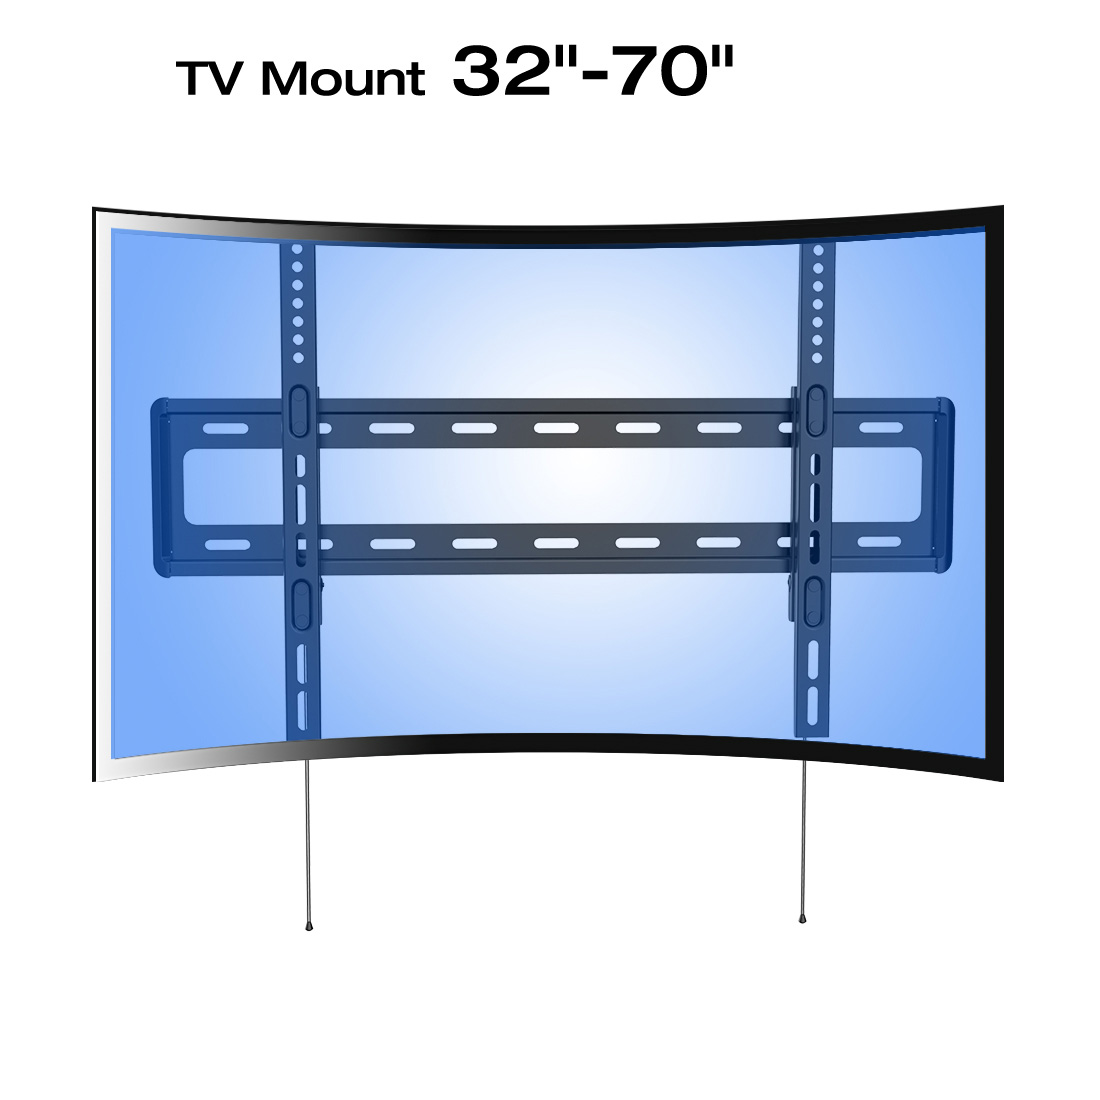 loctek r1 panel tv wall mount bracket for lcdu0026led samsung curved uhd hdtv - Tv Mount